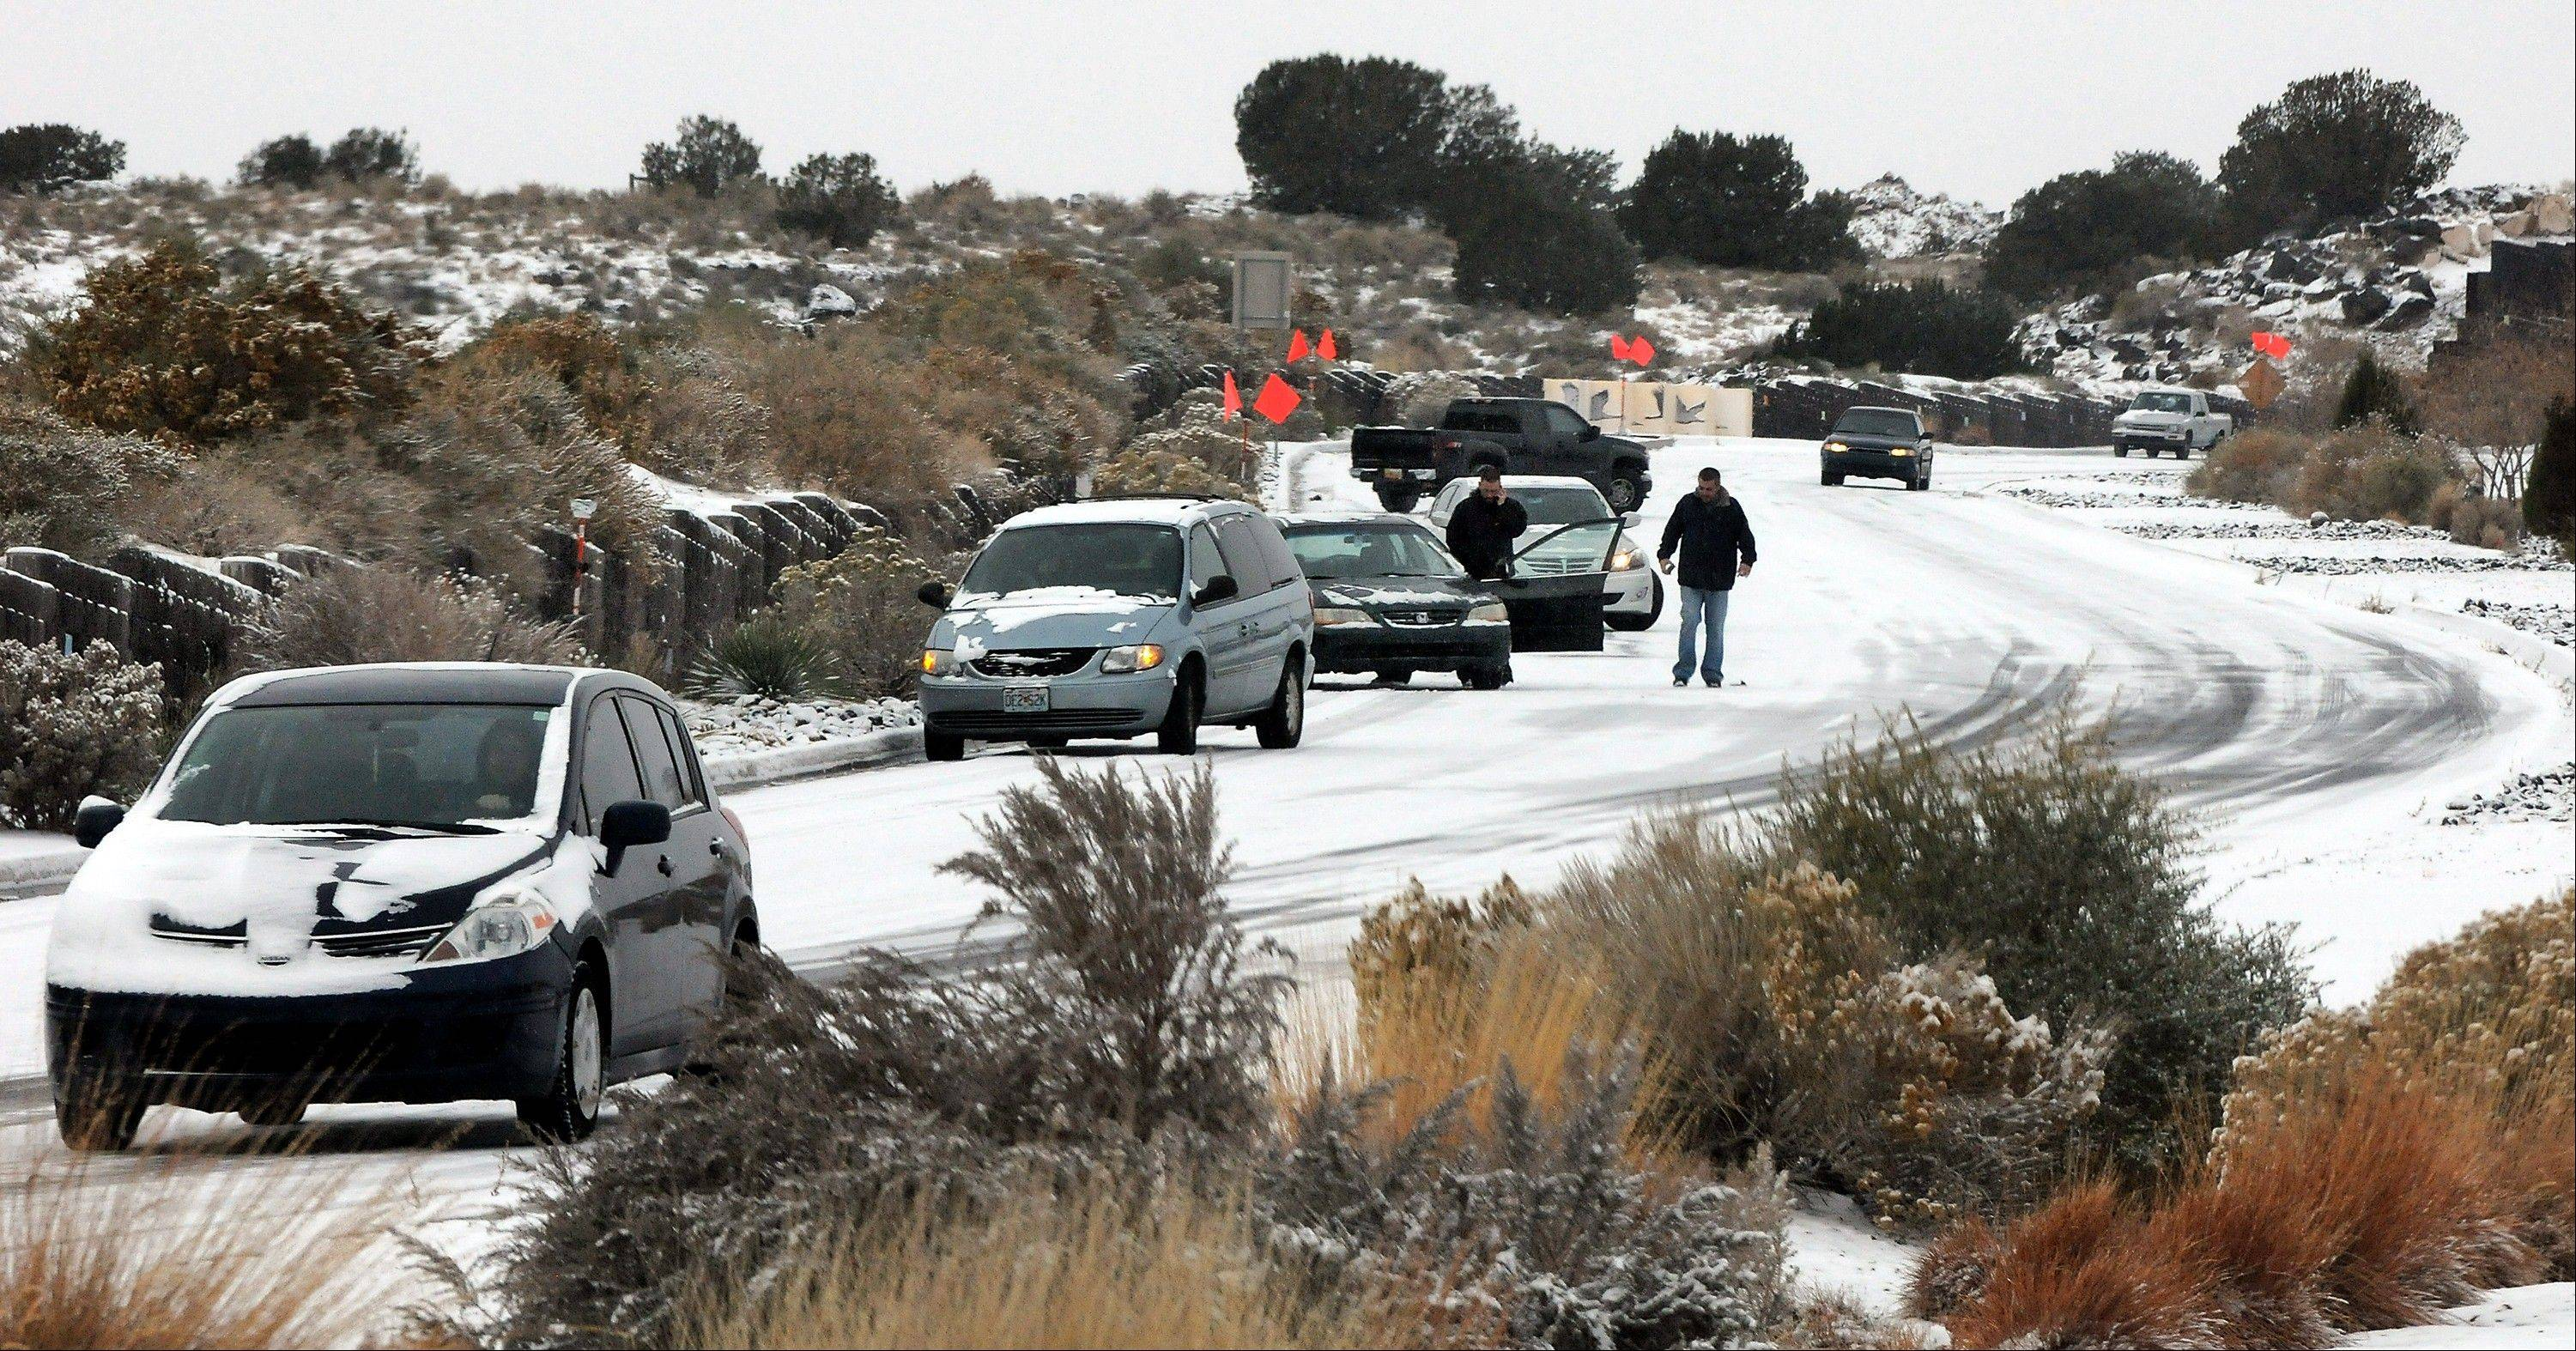 Cars slide on Paseo del Norte Sunday in Albuquerque, N.M., after a winter storm hit New Mexico over the weekend. A large storm already blamed for at least eight deaths in the West slogged through Oklahoma, Texas, New Mexico and other parts of the southwest Sunday as it slowly churned east ahead of Thanksgiving.